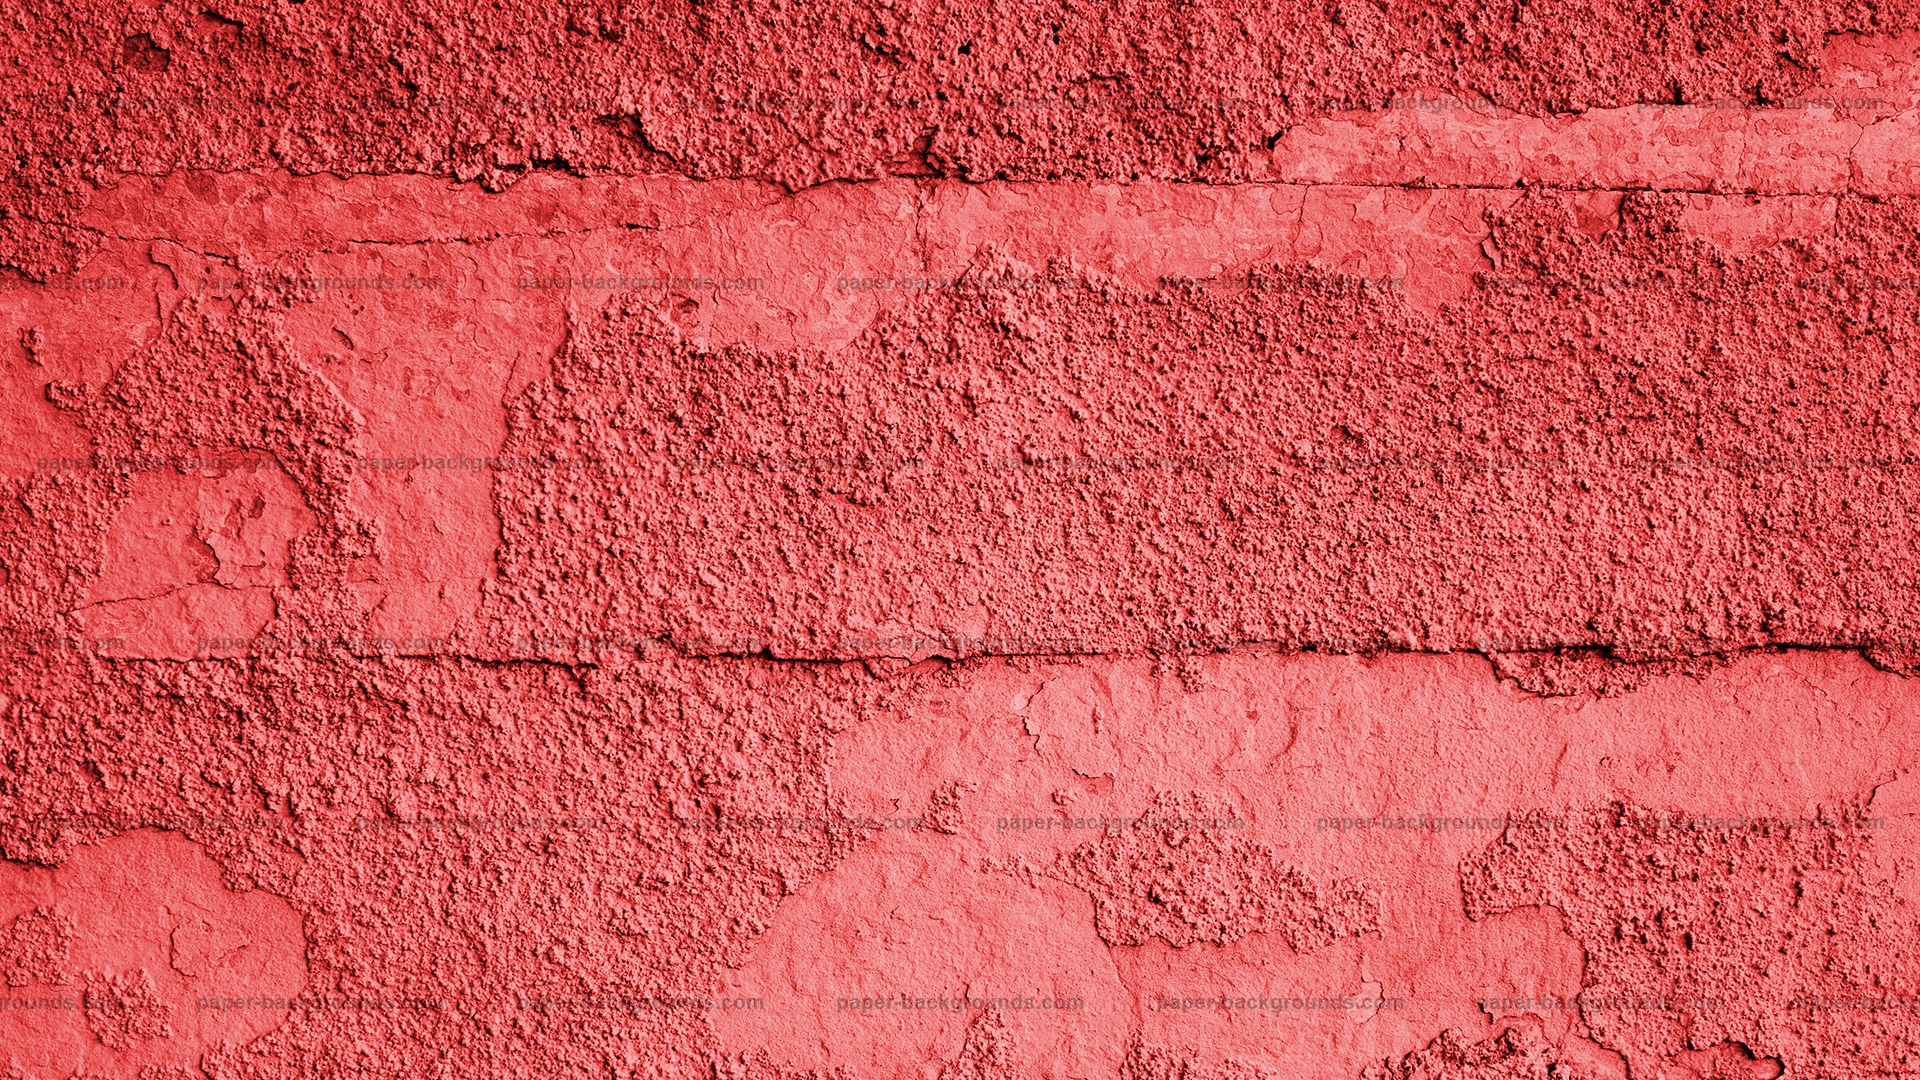 Paper backgrounds stones textures royalty free hd paper - Paper Backgrounds Red Old Wall Texture Hd